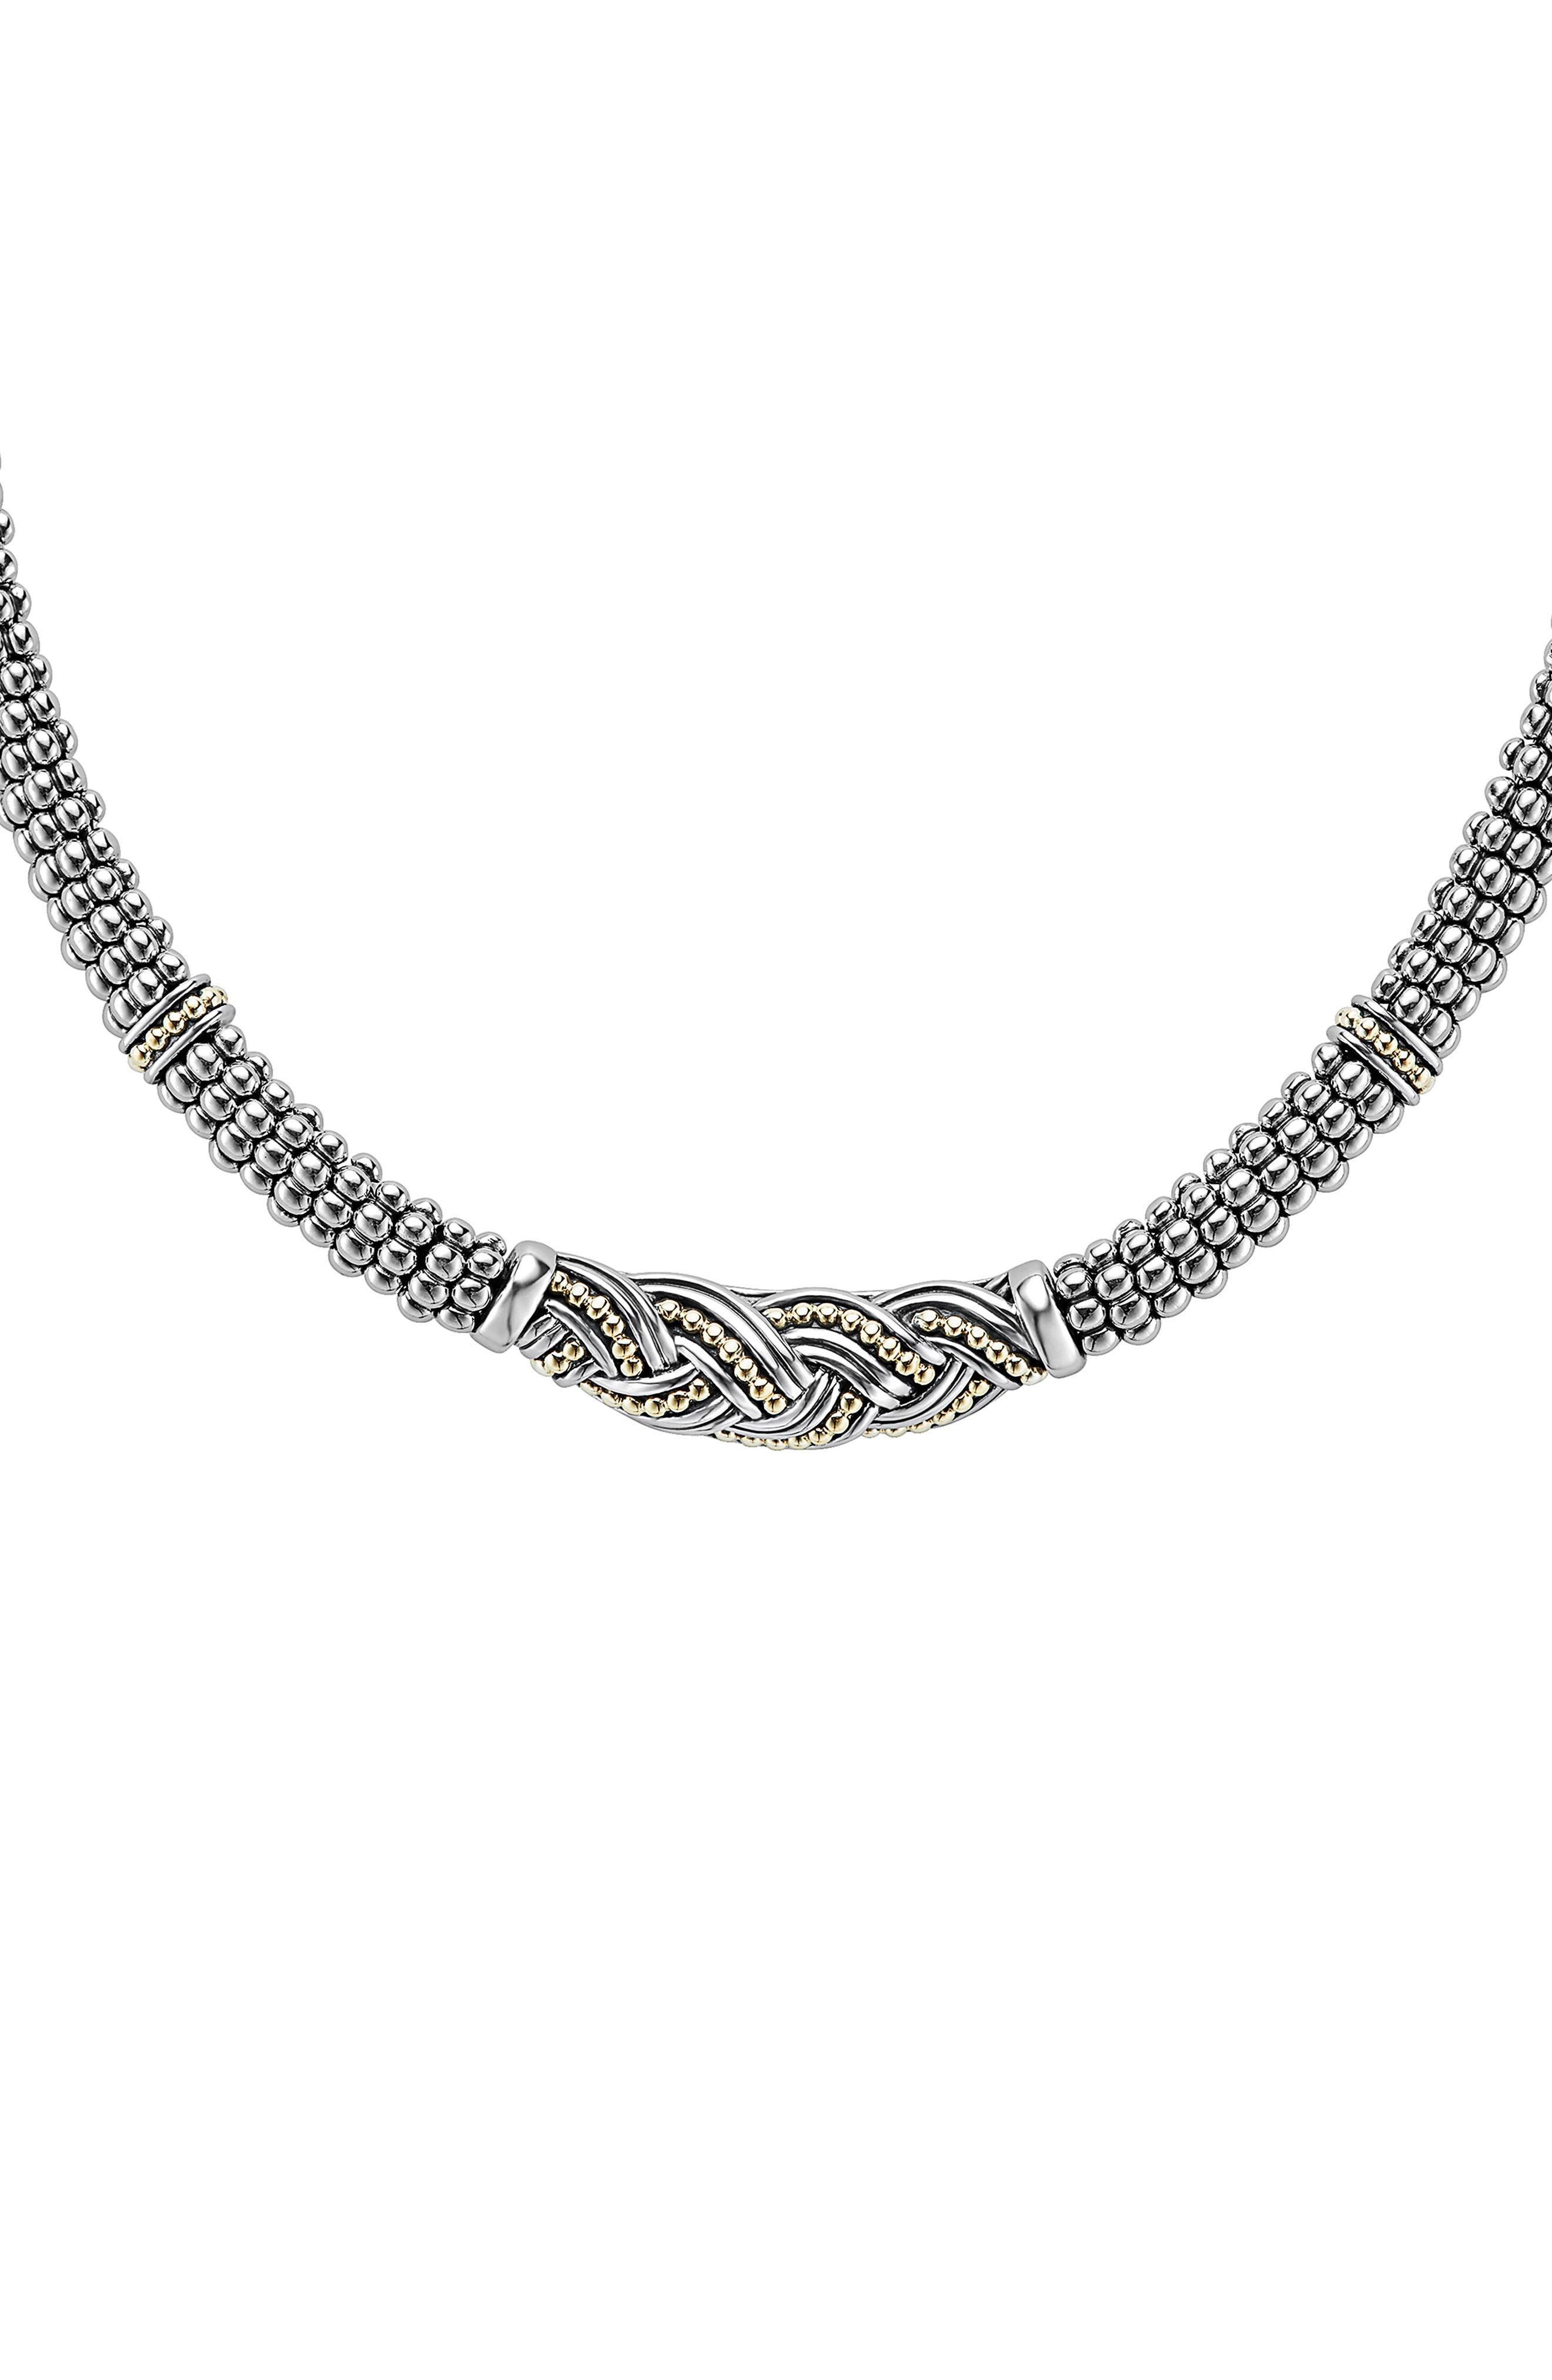 Torsade Rope Necklace,                             Main thumbnail 1, color,                             SILVER/ GOLD